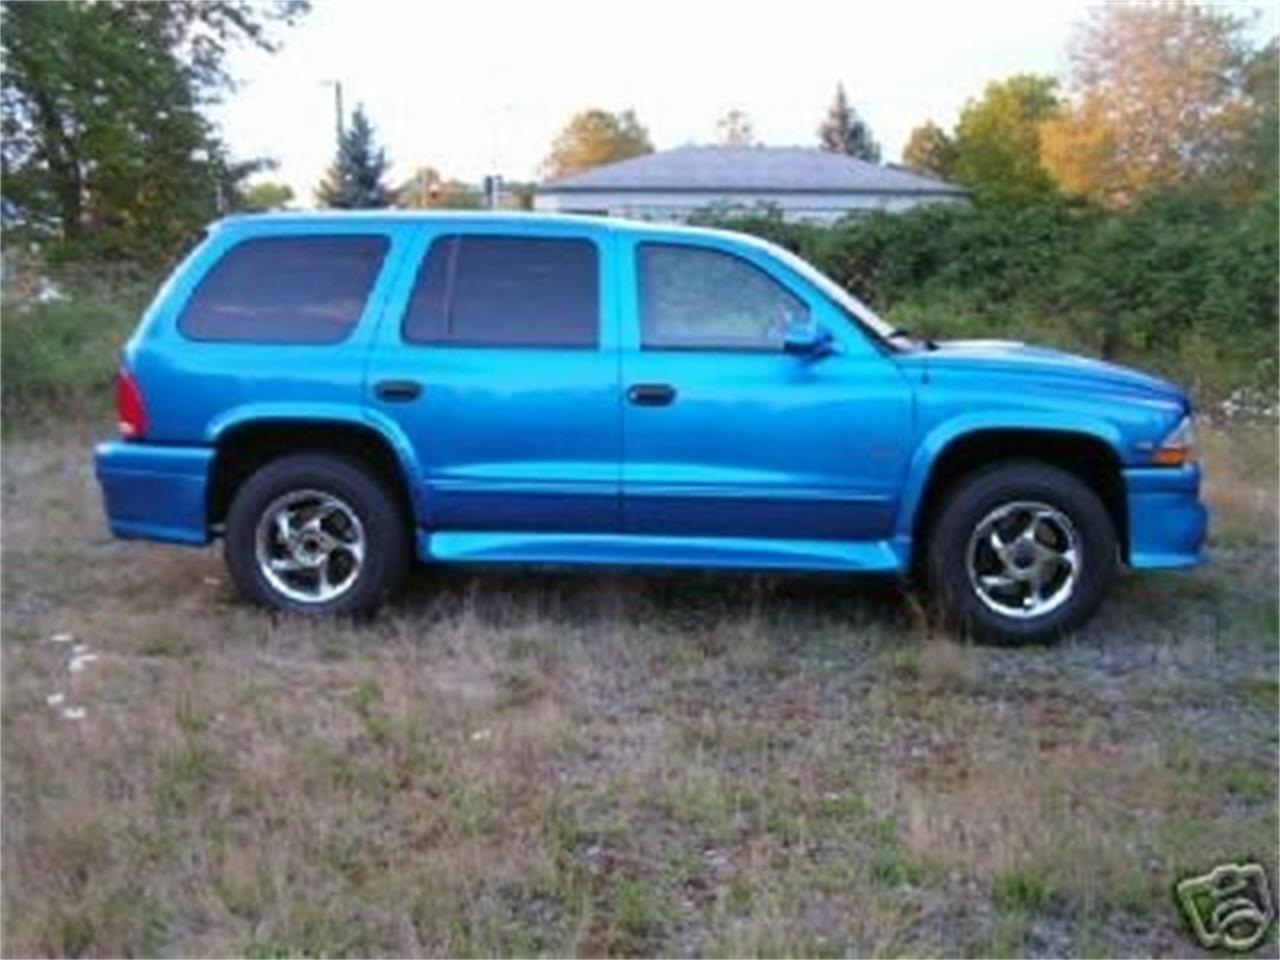 Large Picture of 1999 Shelby Durango Shelby SP360 located in Alberta - $20,000.00 - D6I4